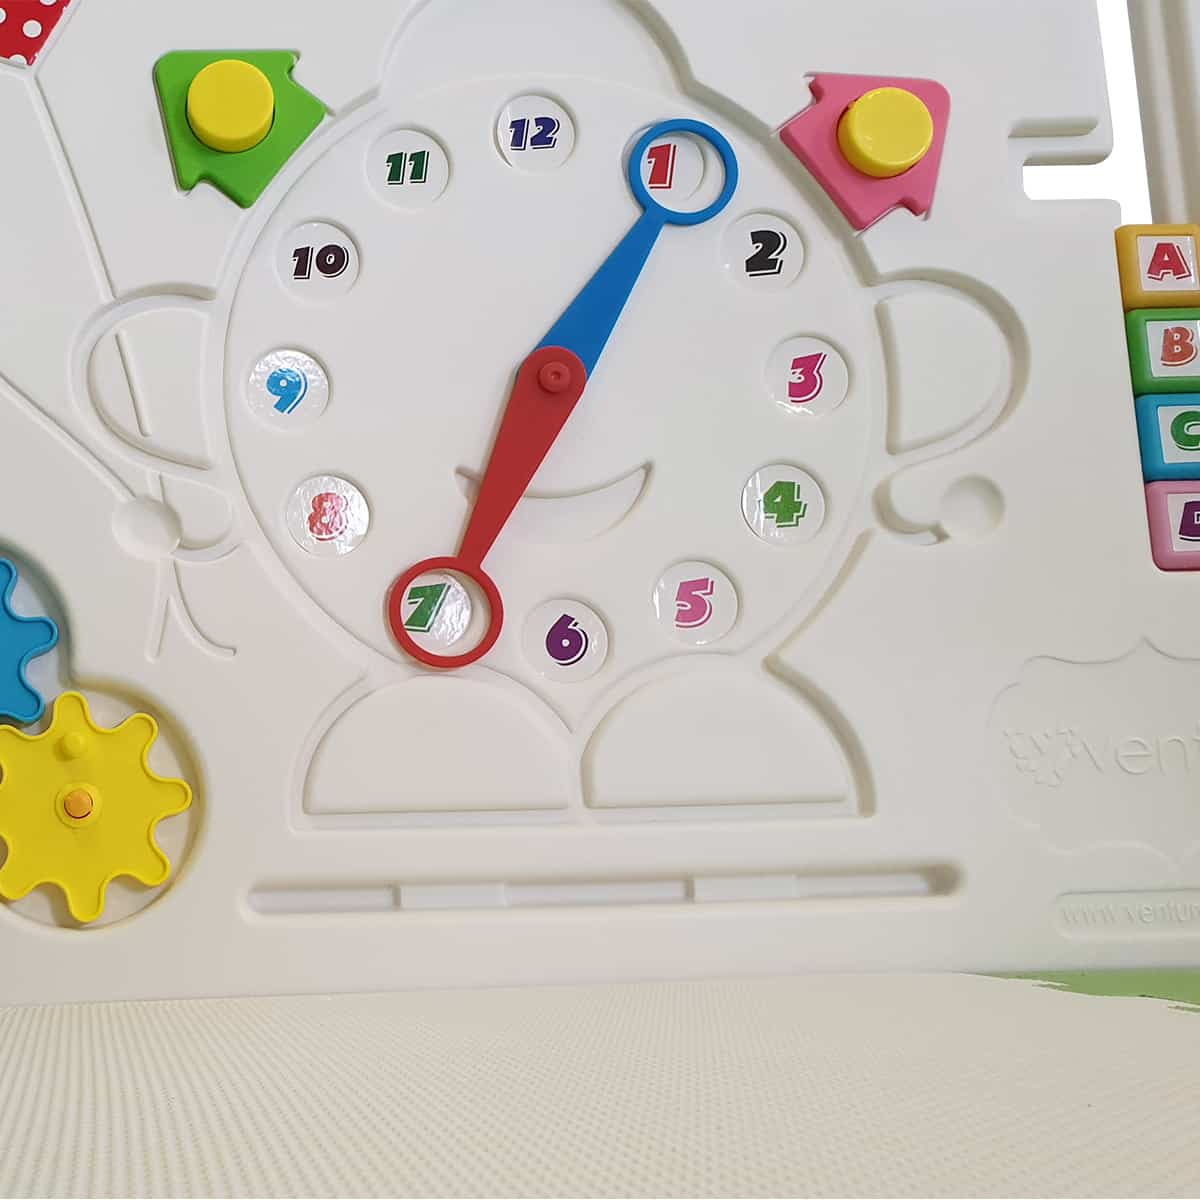 Turn the clock hands and learn with letters on the activity panel